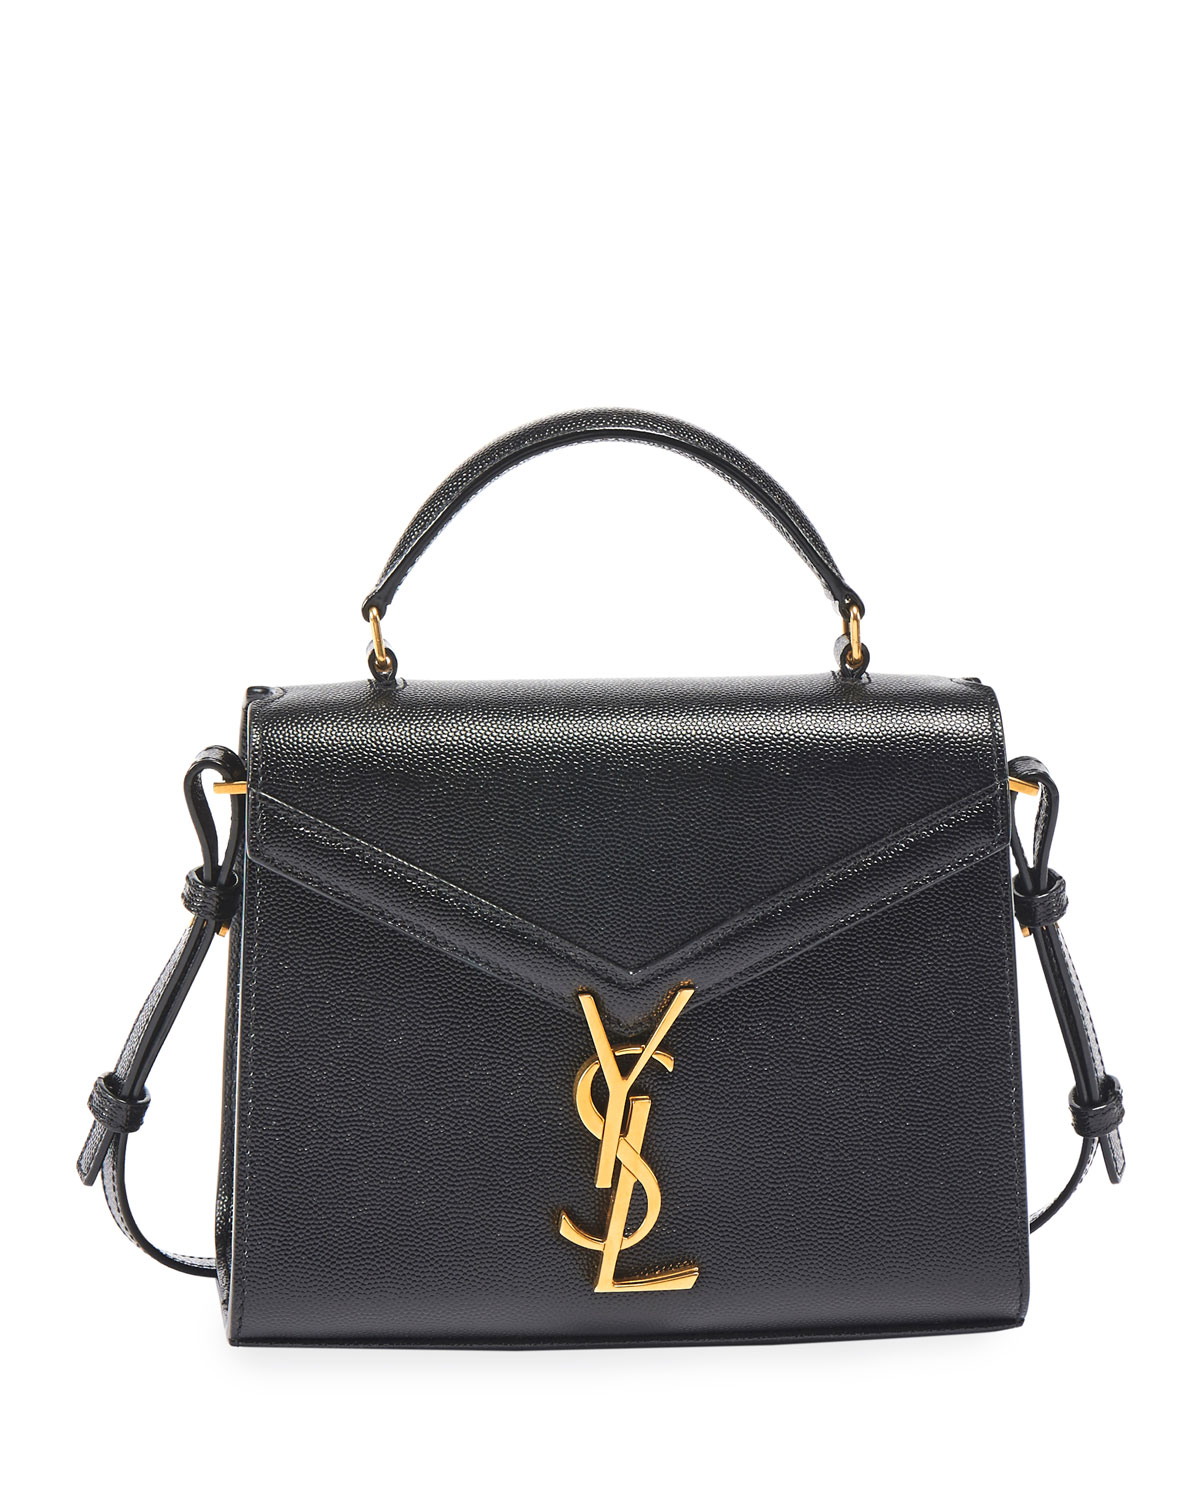 Cassandra Small Ysl Monogram Leather Top Handle Bag by Saint Laurent